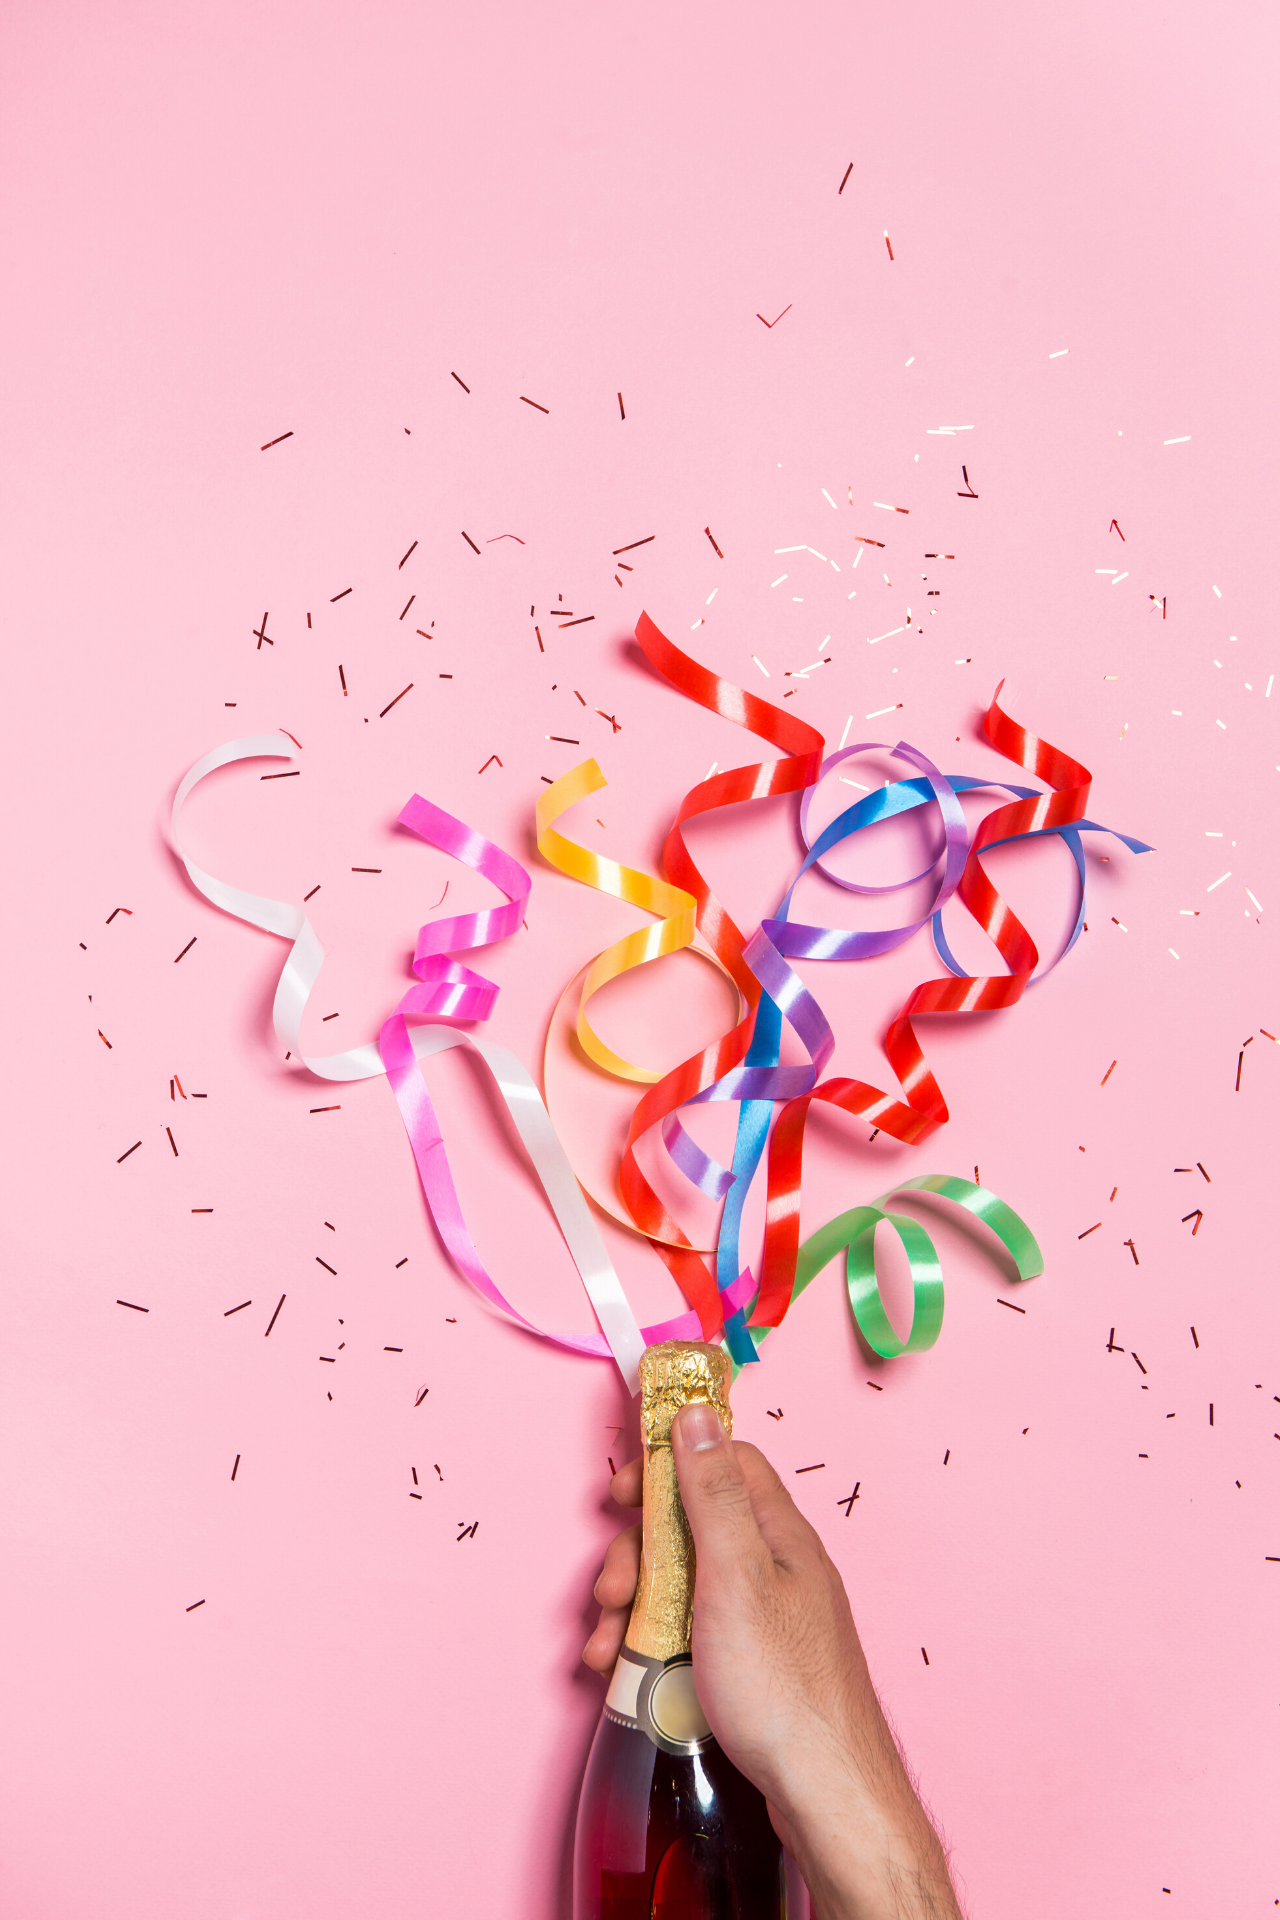 9 new years resolutions that are not focused on weight loss